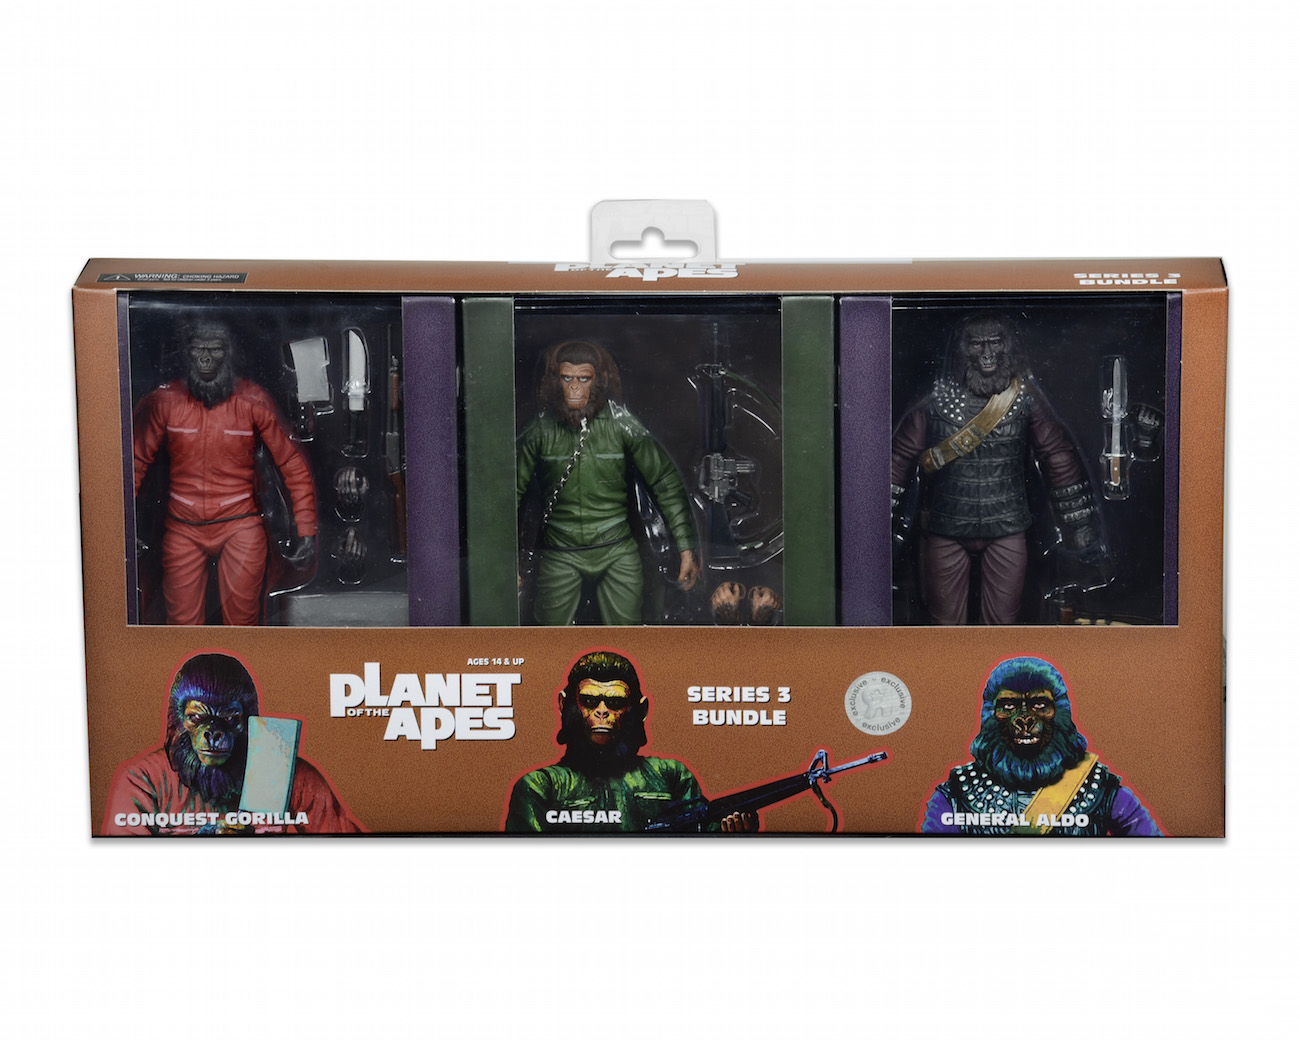 Planet of the Apes NECA Figurine Tribute Cards Complete Set